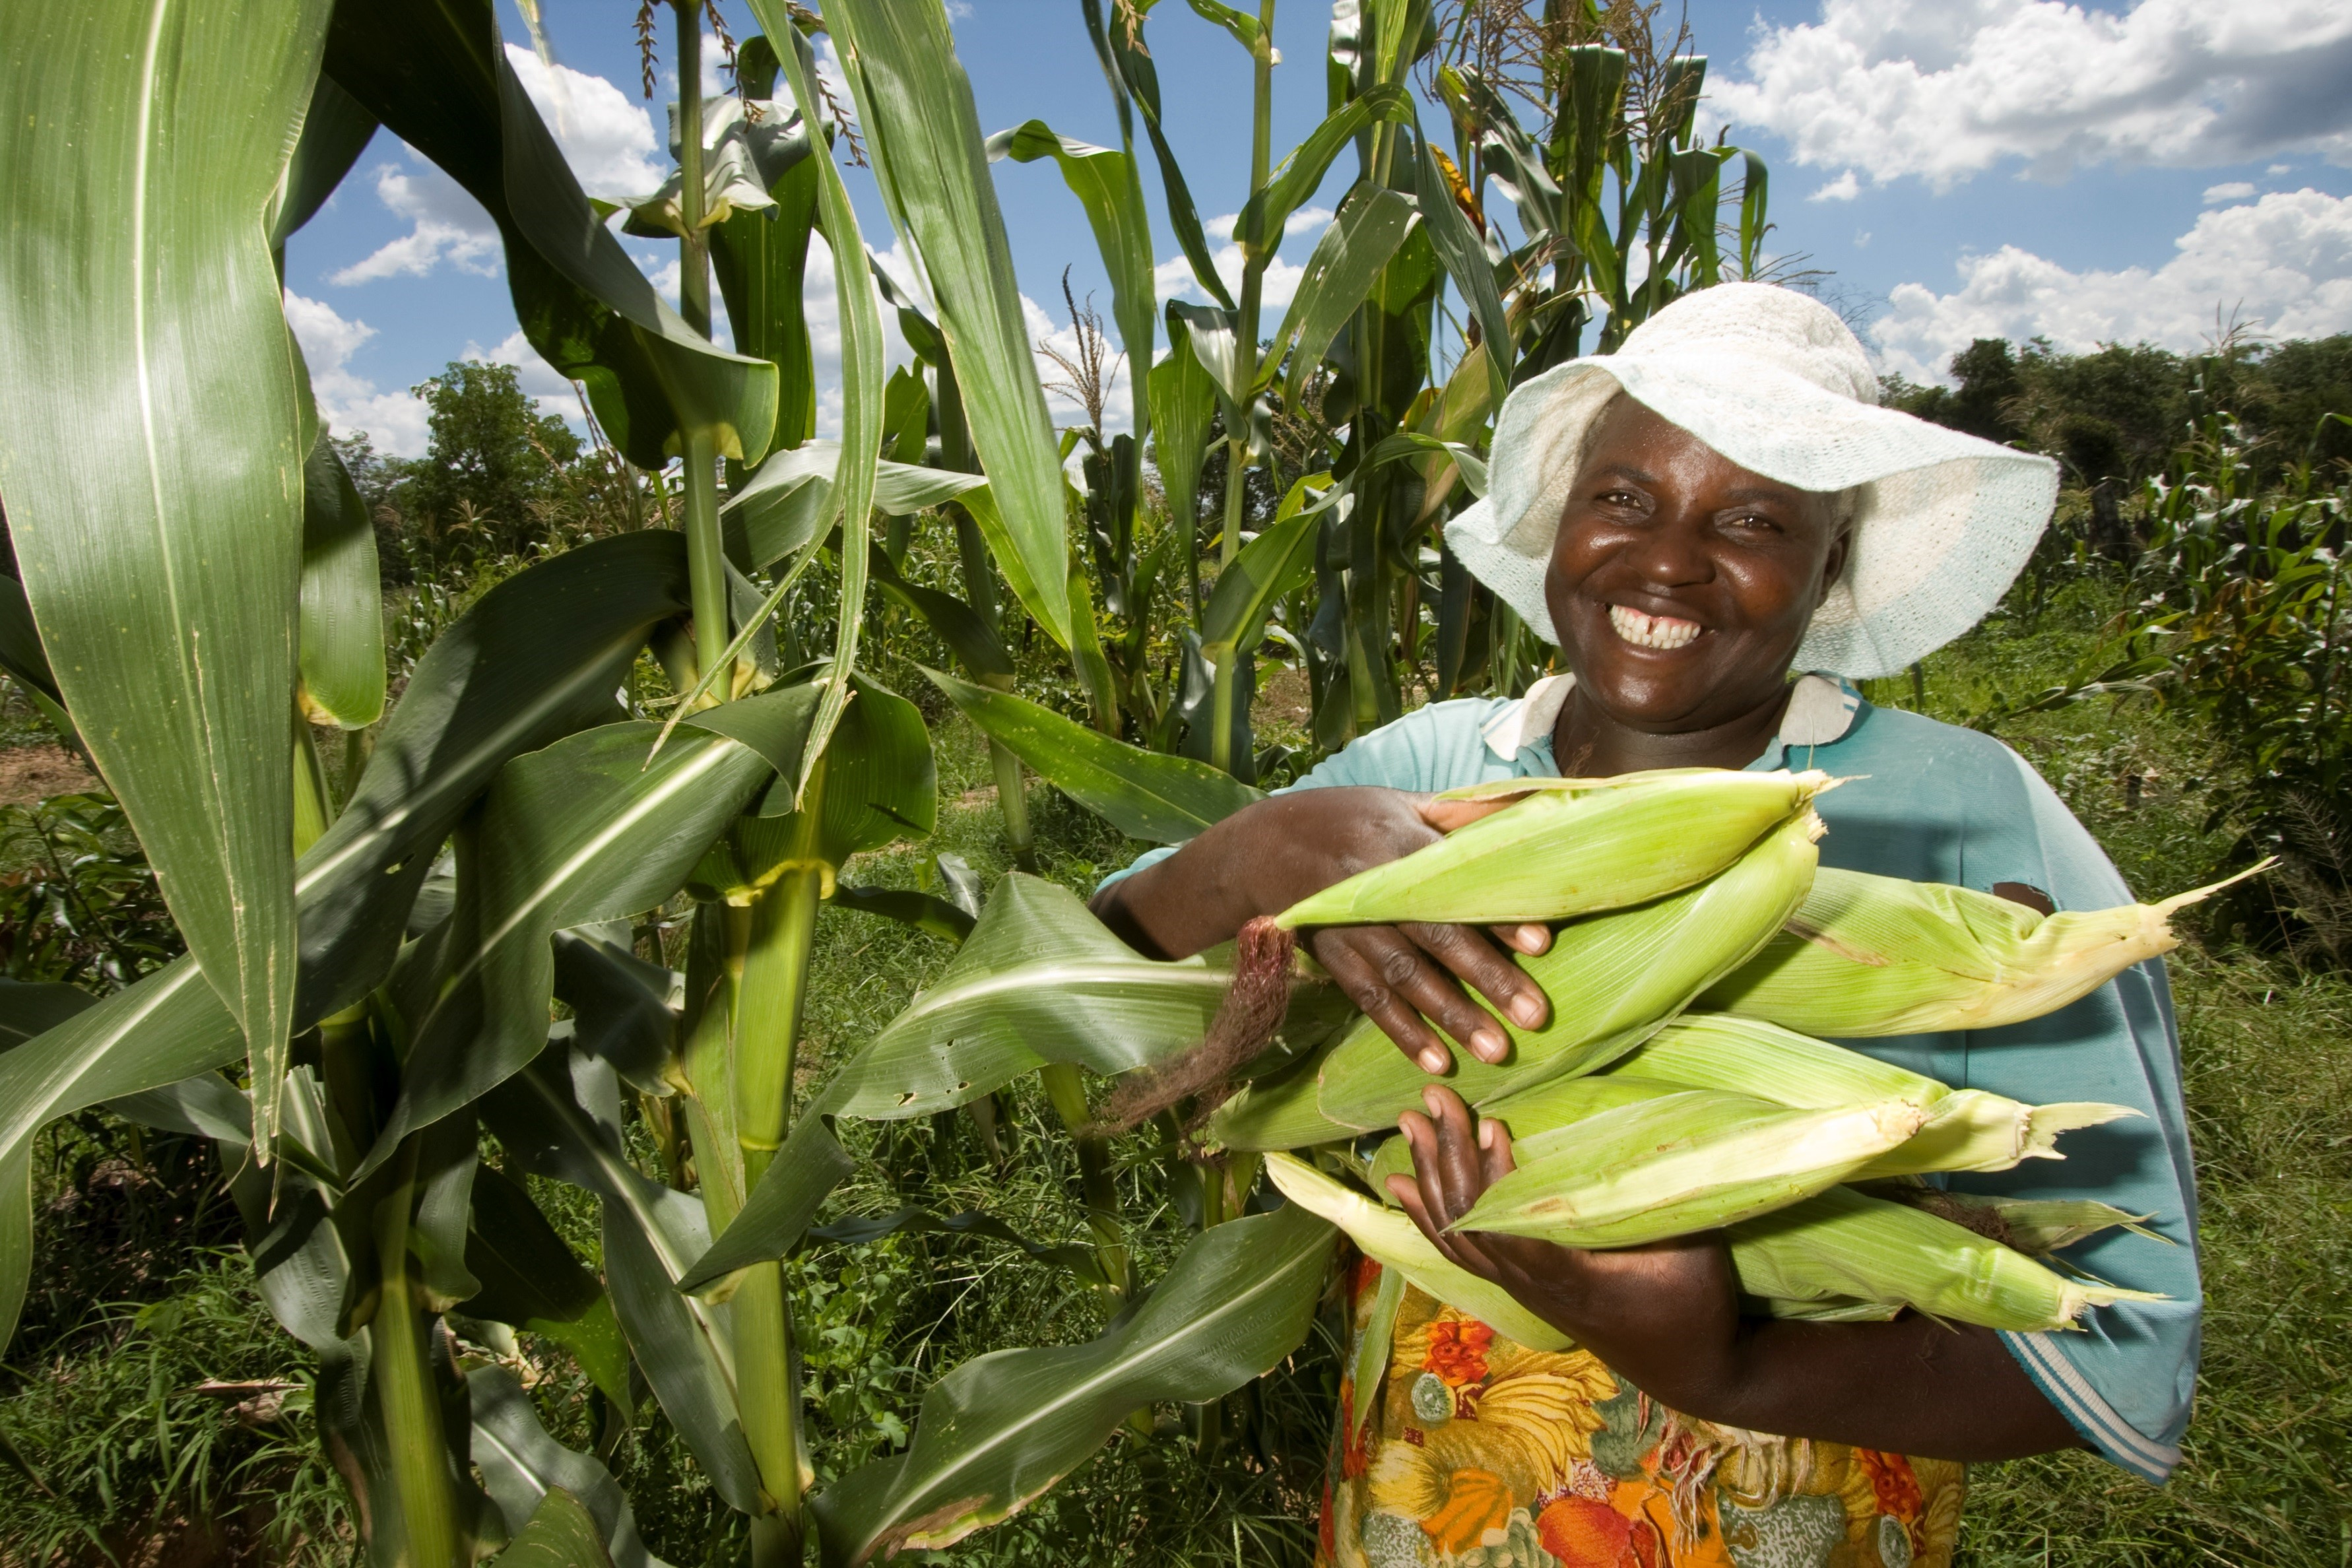 Maize is one of the staple foods eaten in Zimbabwe